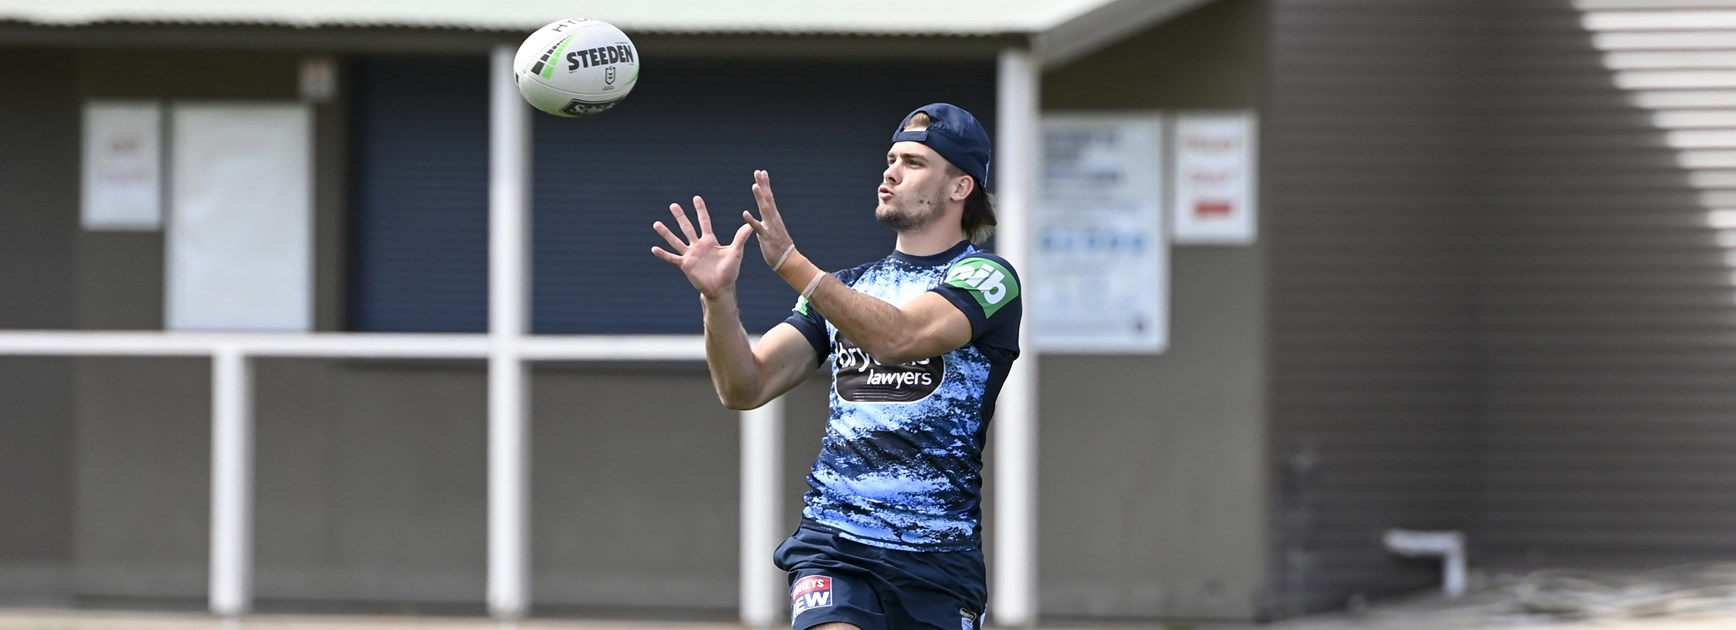 Papenhuyzen tips Fittler to stick solid but ready if needed